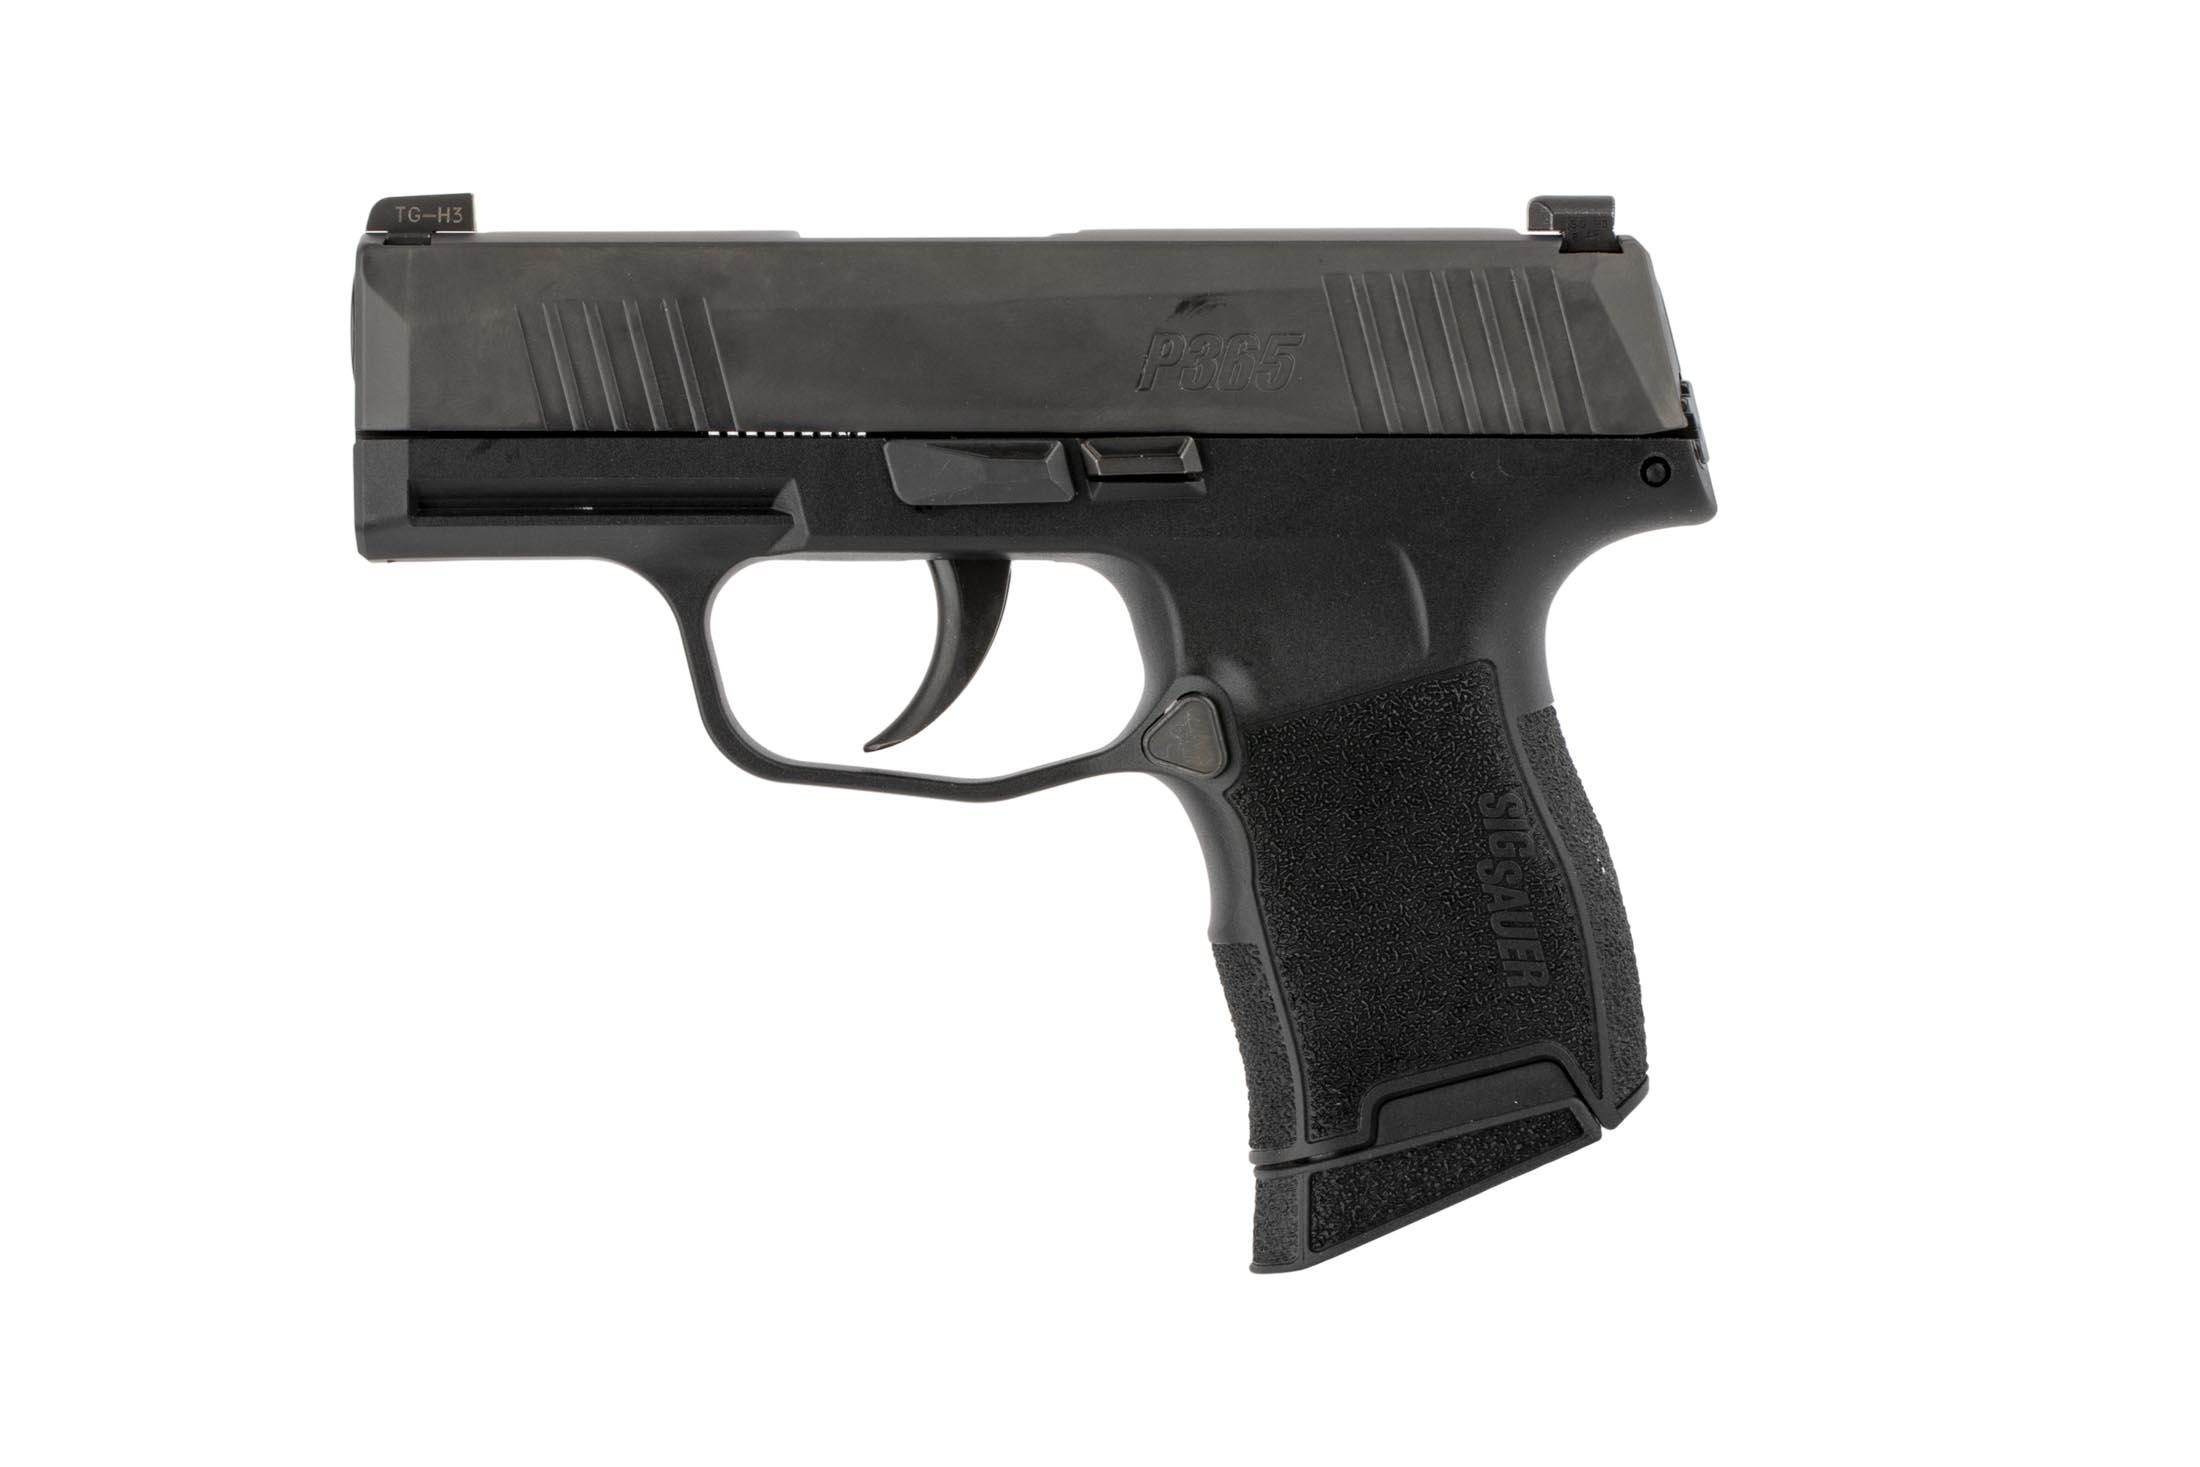 Sig Sauer 9mm P365 is equipped with a 3.1 barrel, 10-round capacity, and fantastic trigger